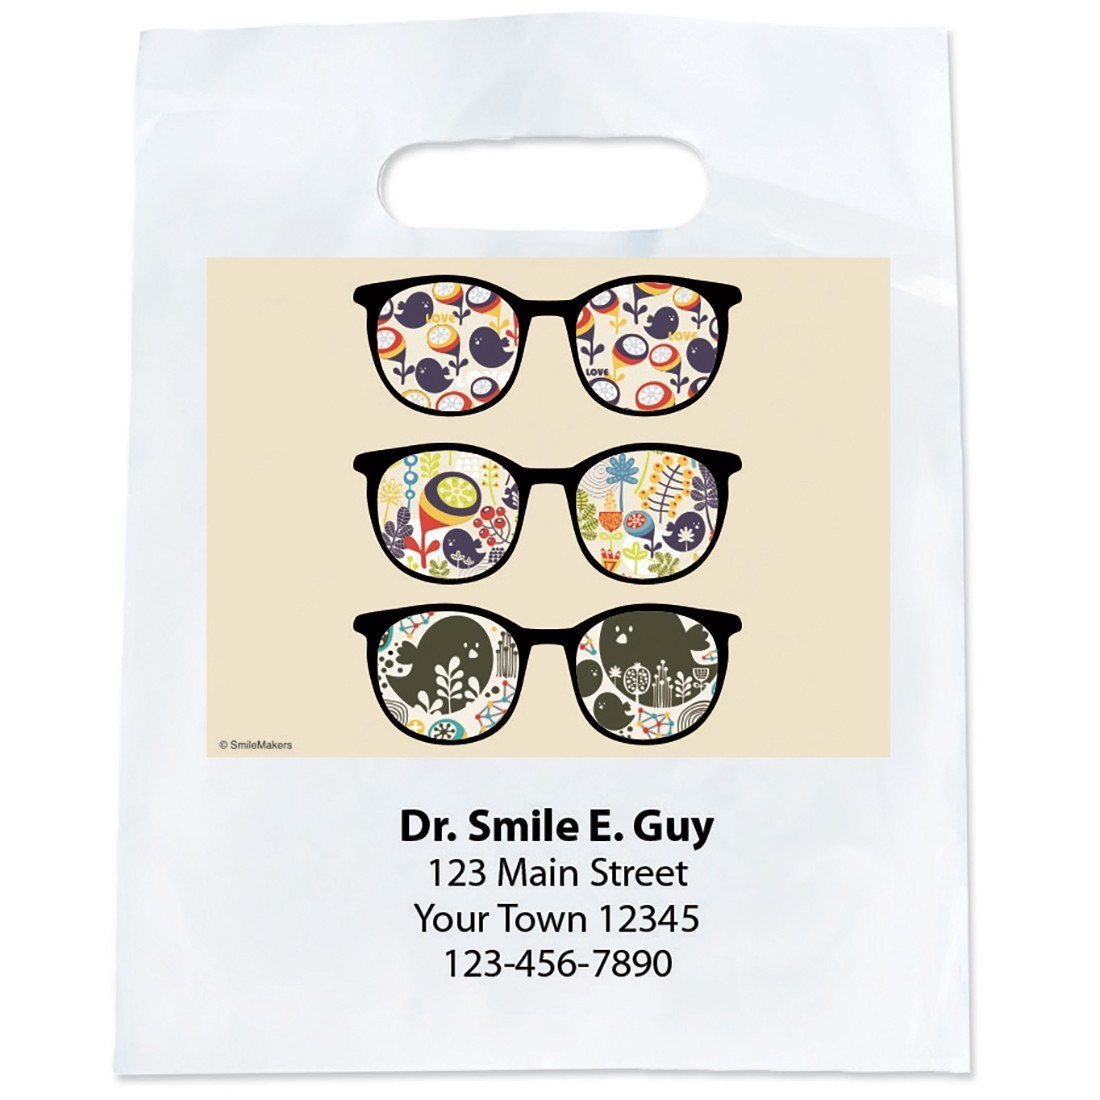 Custom Design Lenses Glasses Bags                  [image]